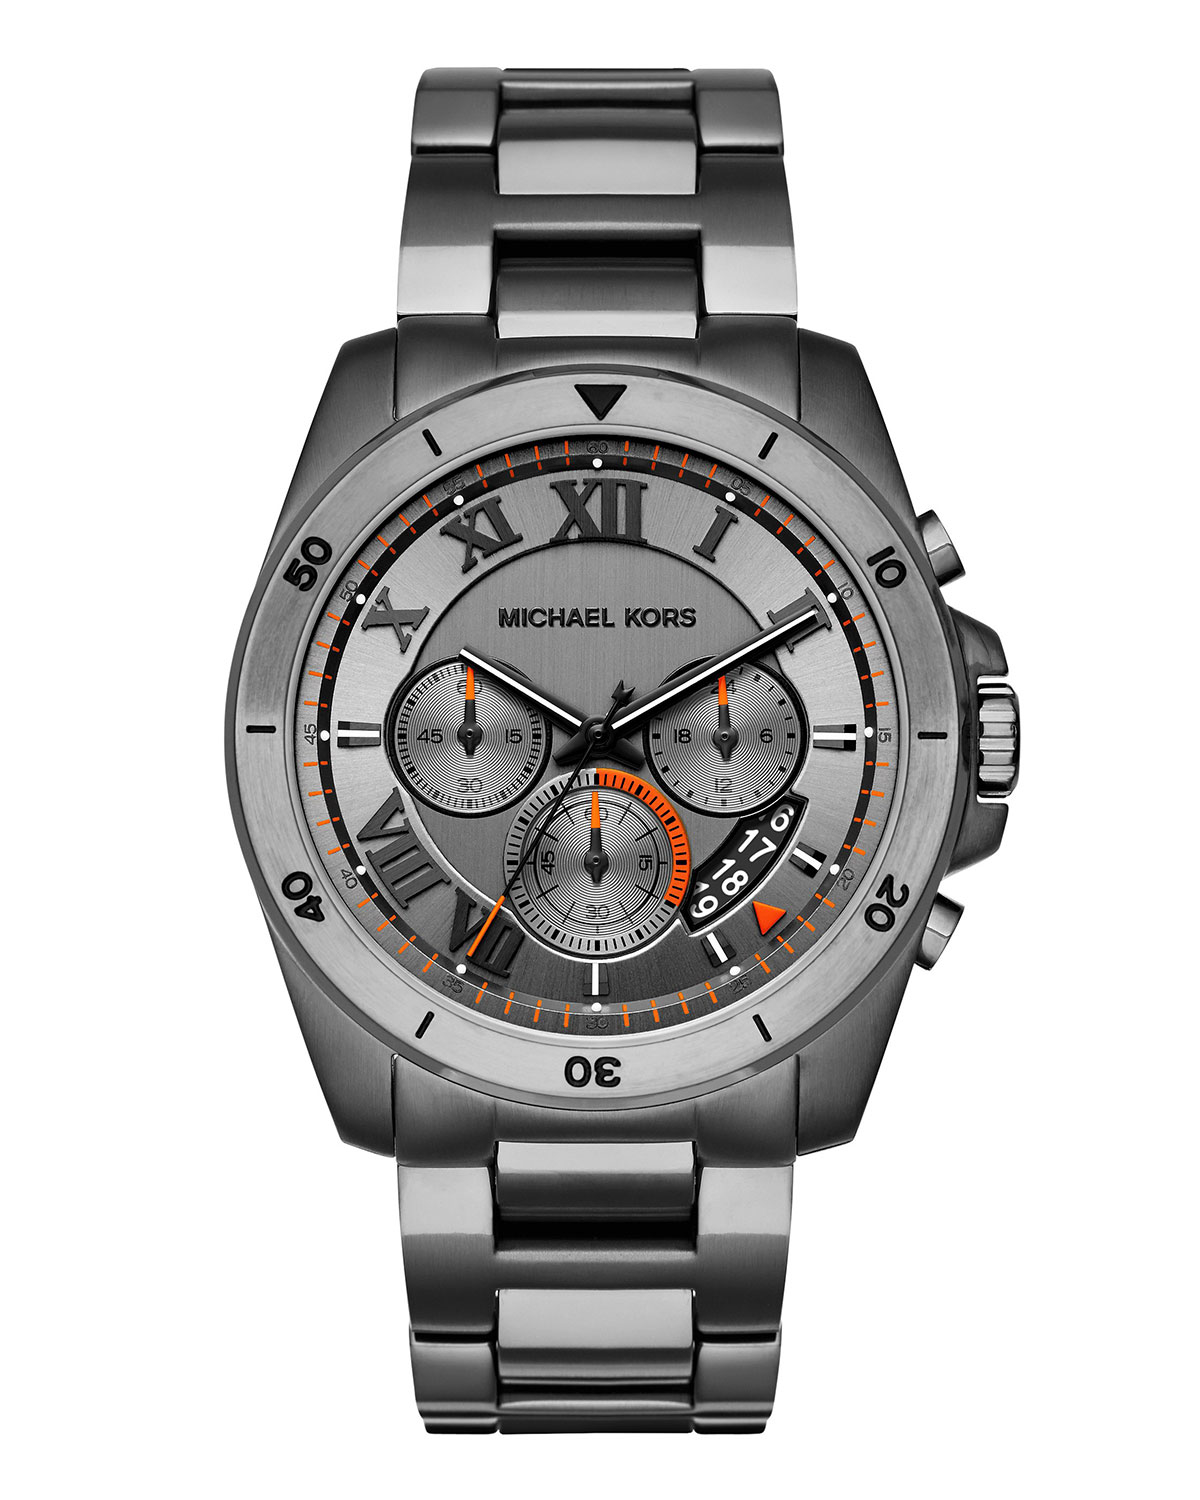 Aug 13, · Michael Kors is going back to its roots for the next model in its ever-expanding Access smartwatch line. It's reviving its long-serving Runway watch as .